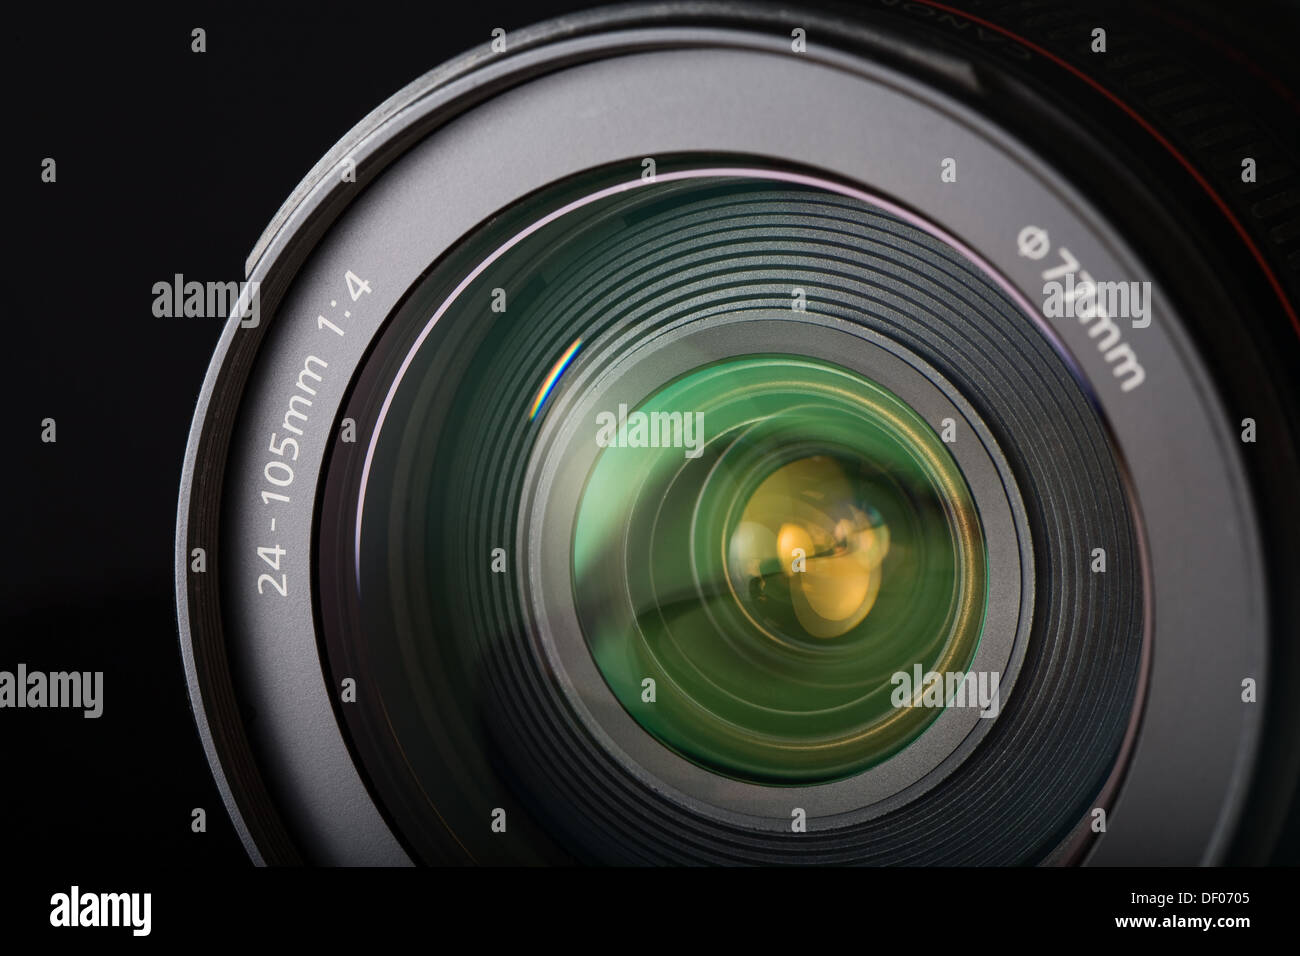 Close-up of the front of a zoom lens - Stock Image